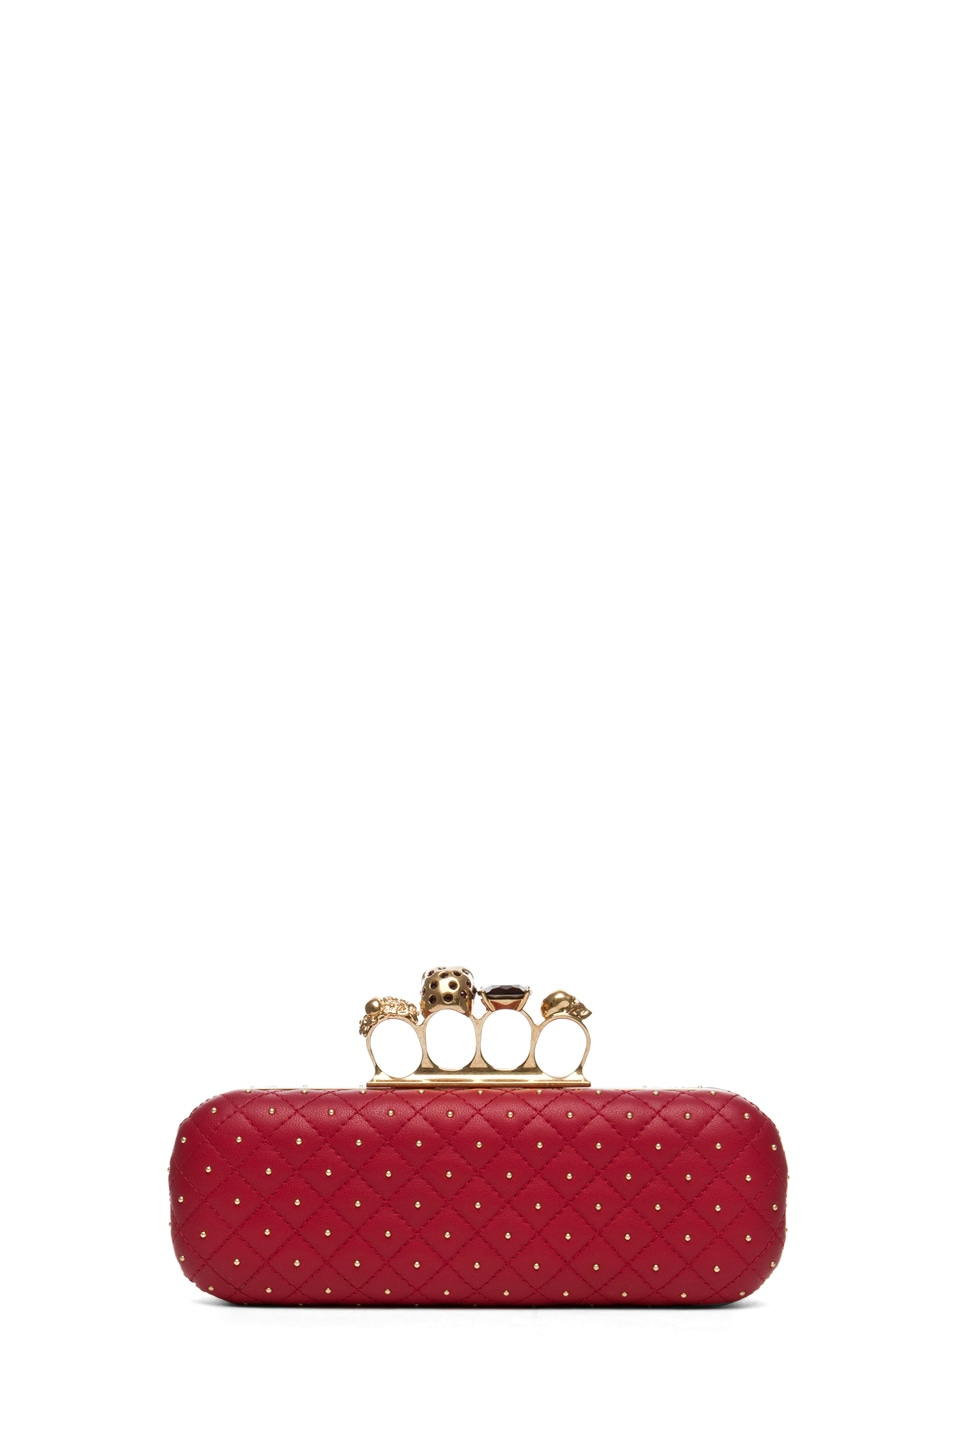 Image 2 of Alexander McQueen Knuckle Box Long Clutch in Cherry